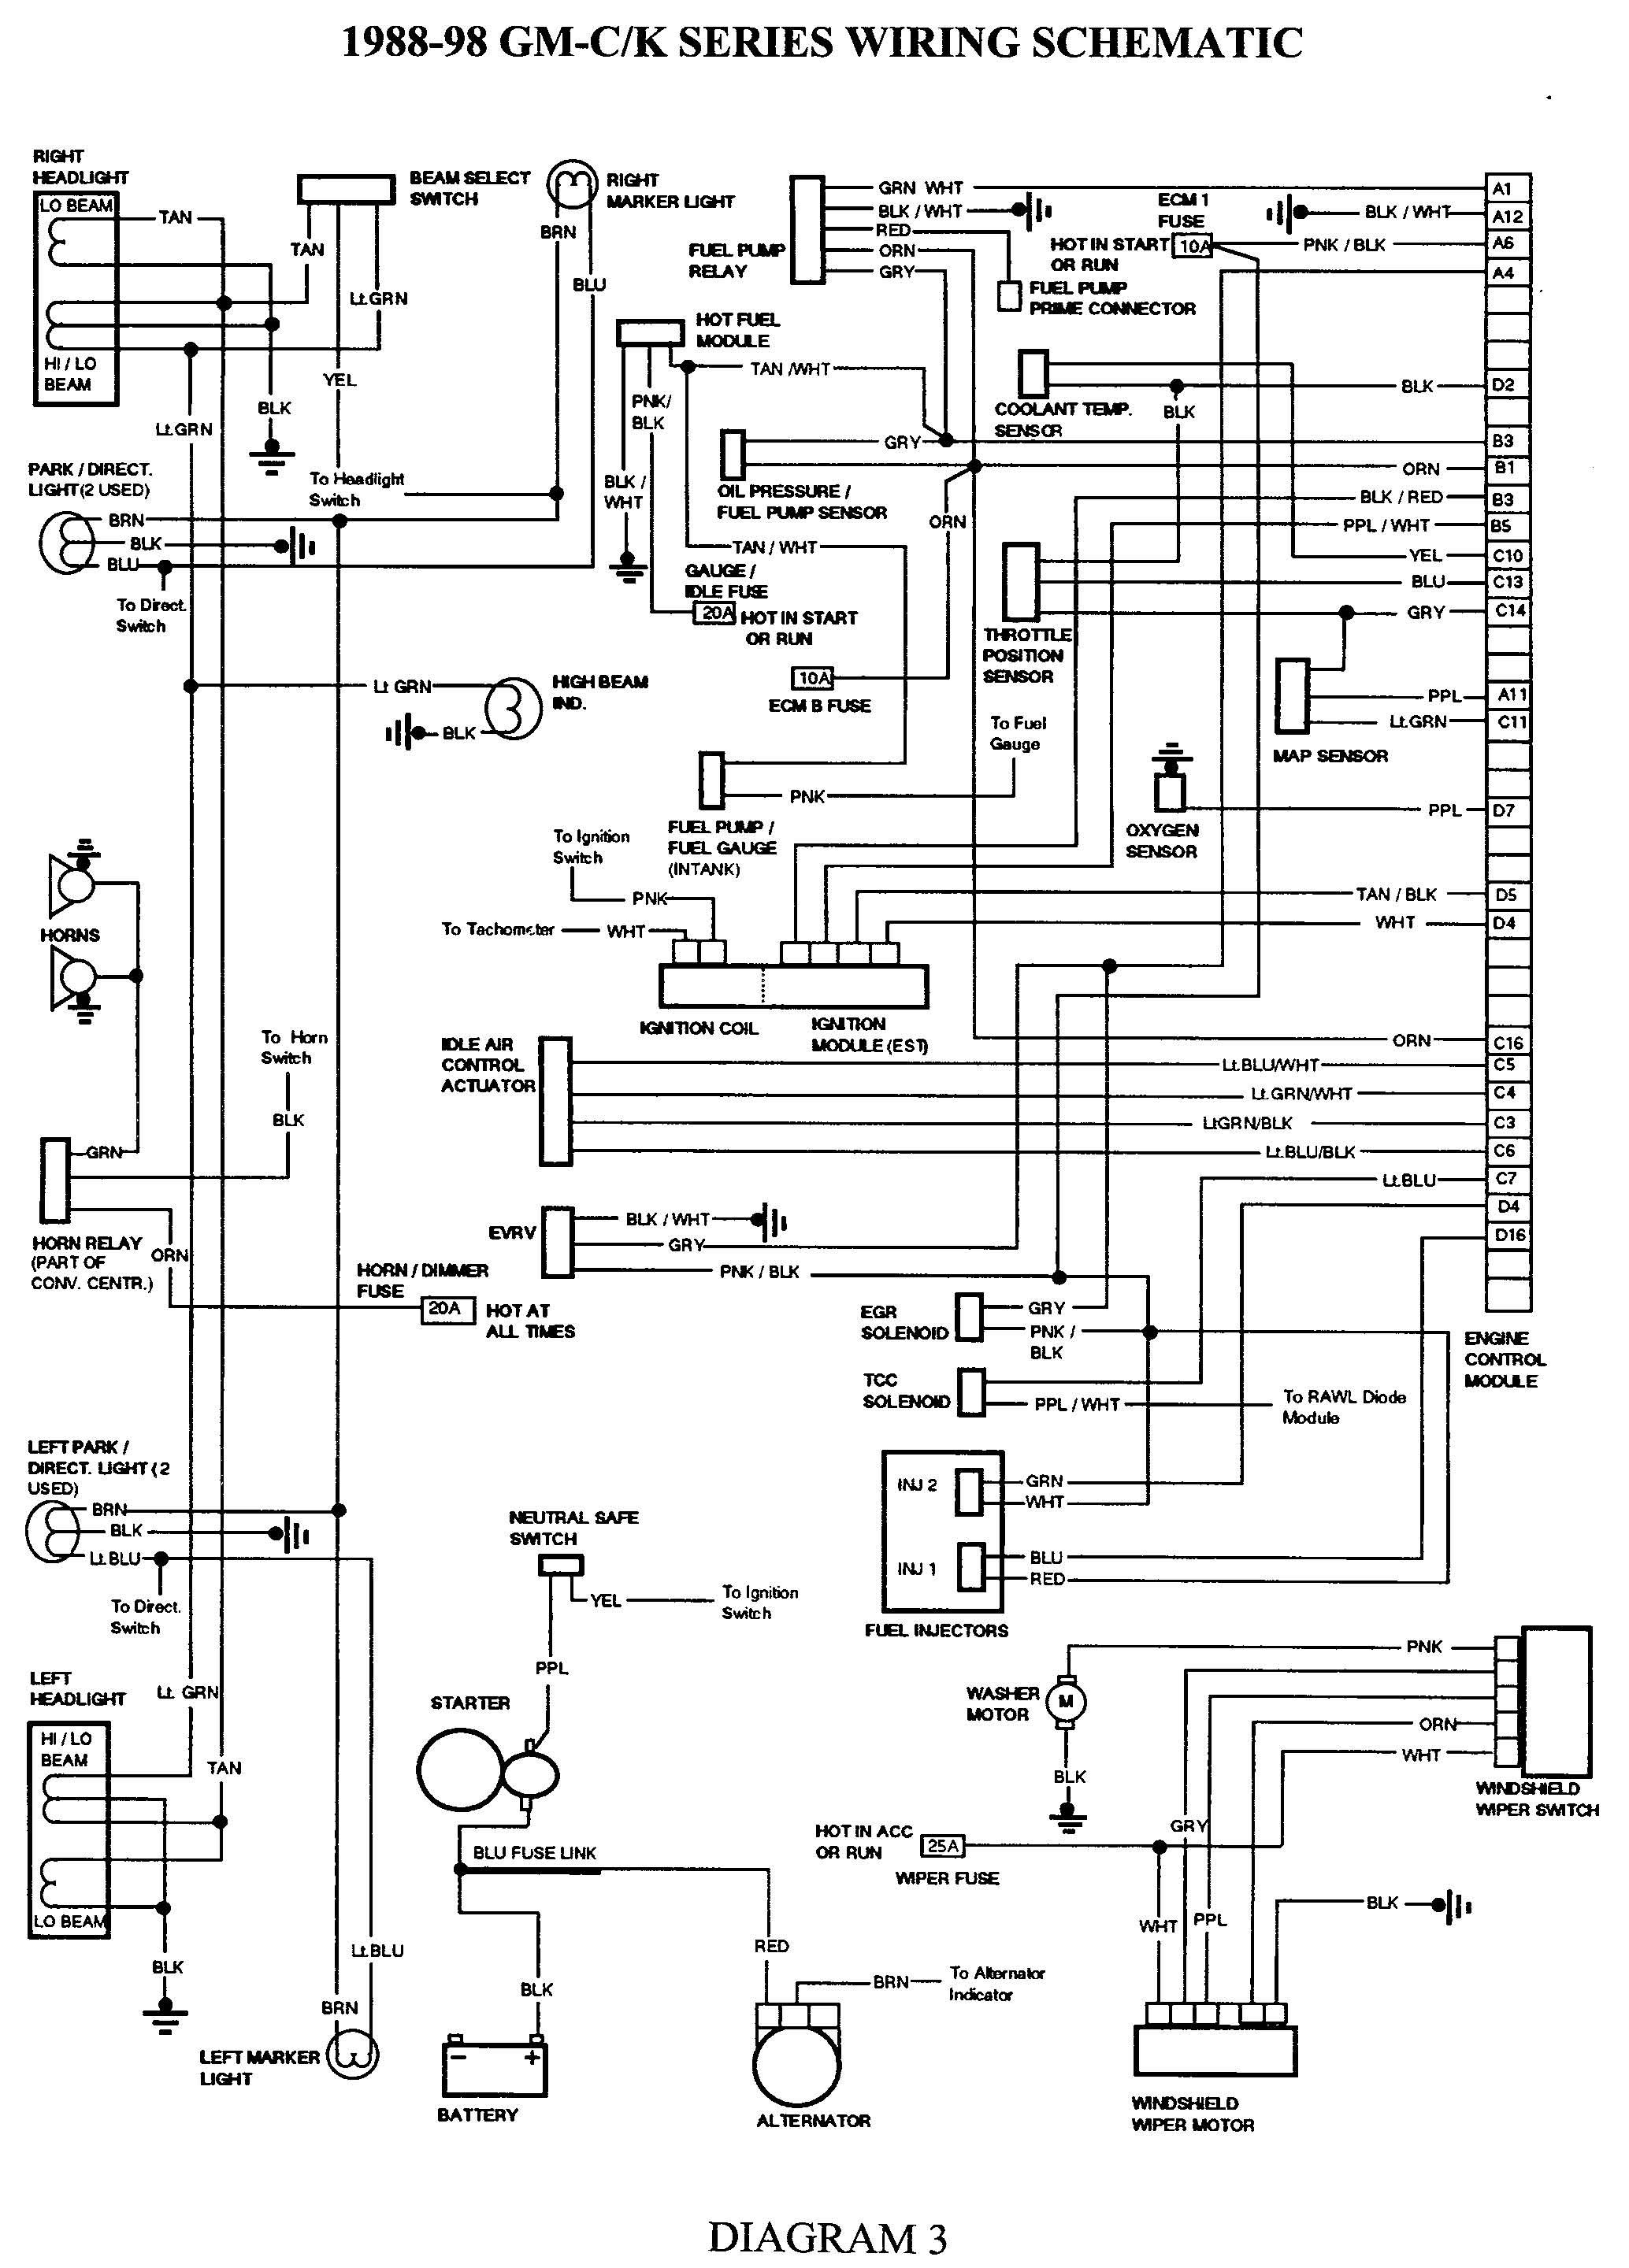 piaa wiring diagram free picture schematic wiring diagrampiaa wiring diagram free picture schematic wiring schematic diagrampiaa wiring diagram free picture schematic best wiring